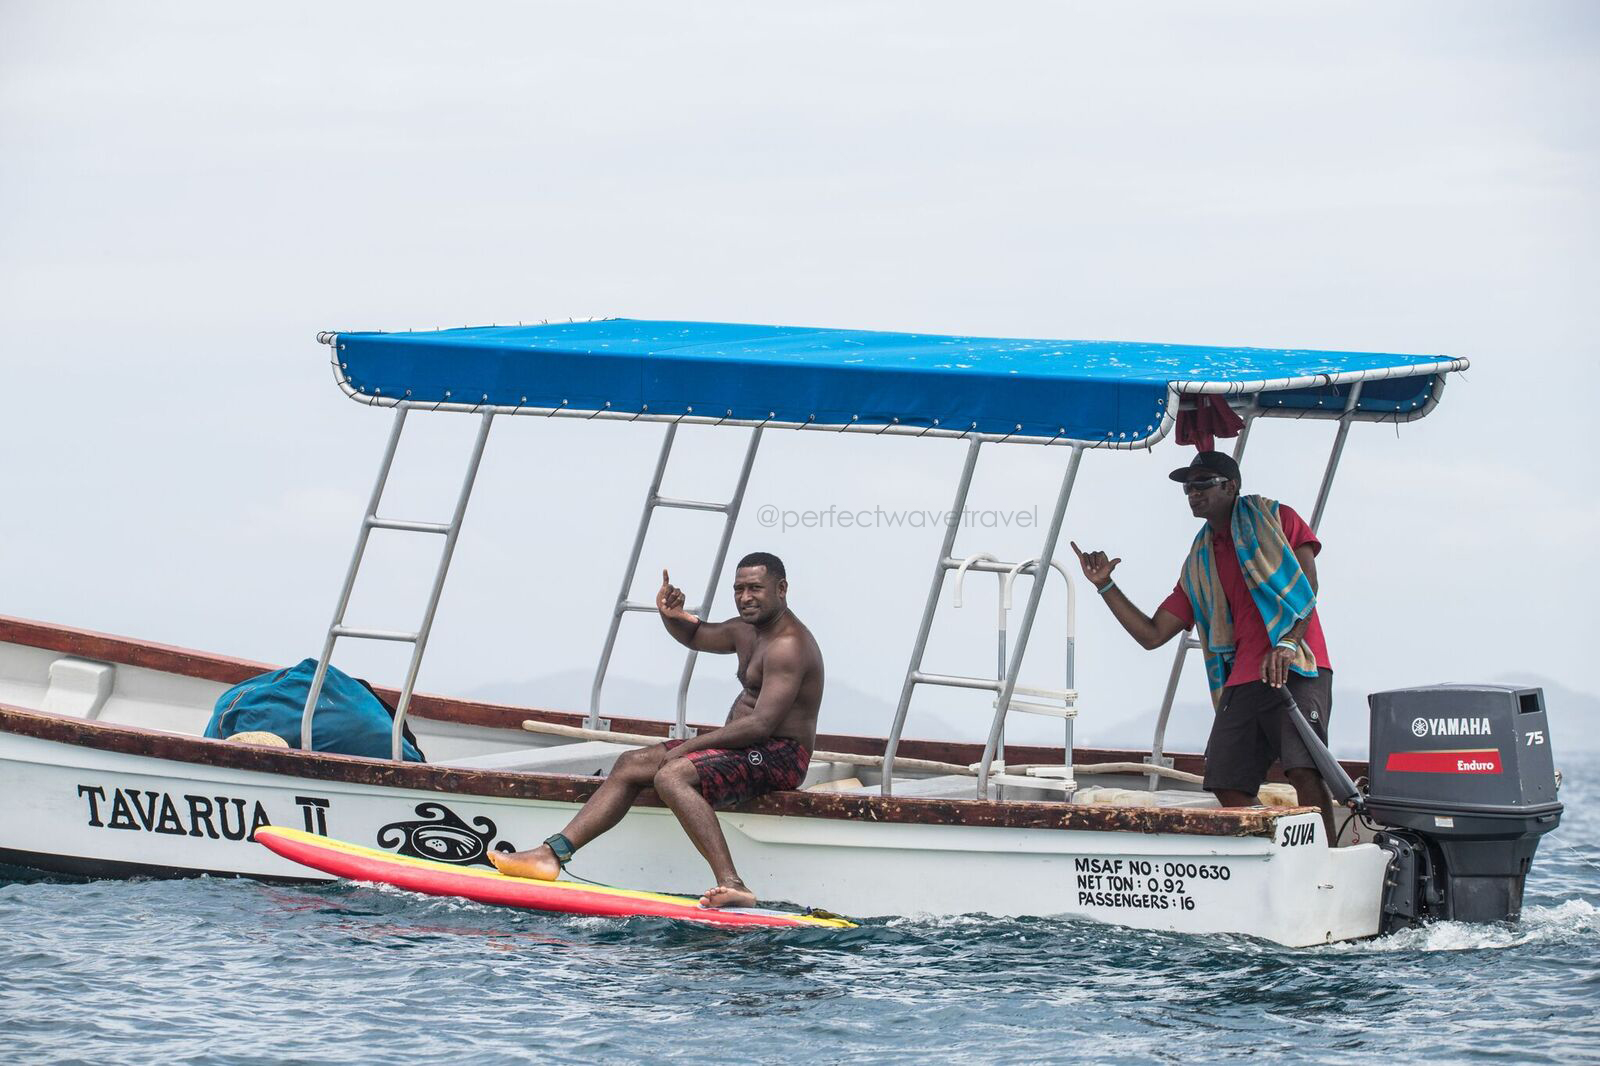 3-tavarua-locals-are-truely-amoungst-the-happiest-and-caring-islanders-out-there-bula-vinaka_preview